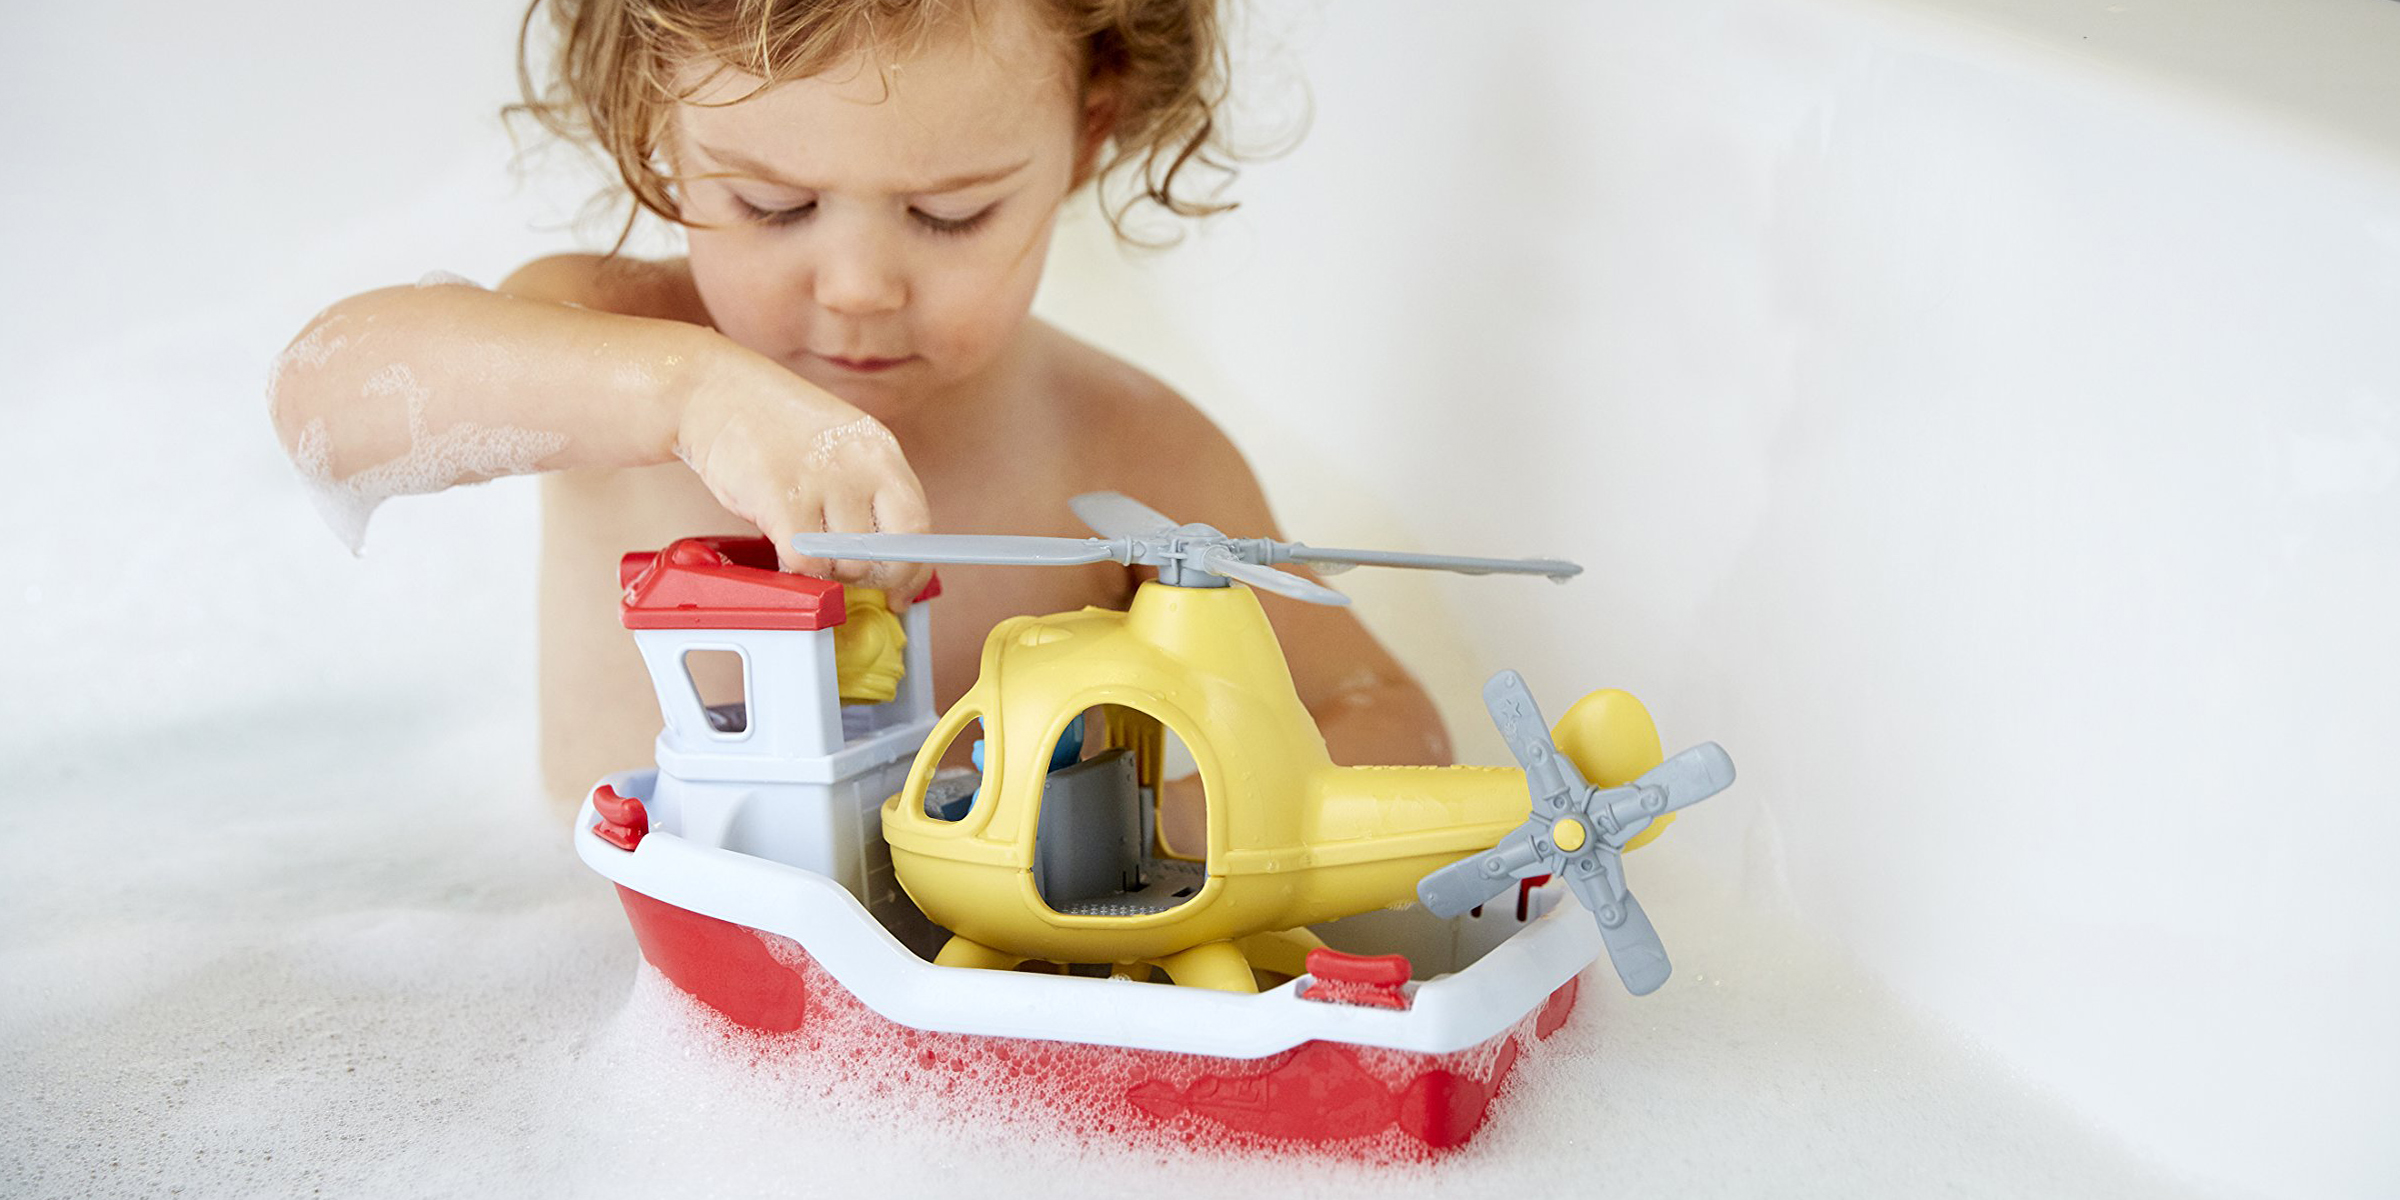 The Best Toys For 2 Year Olds 2020